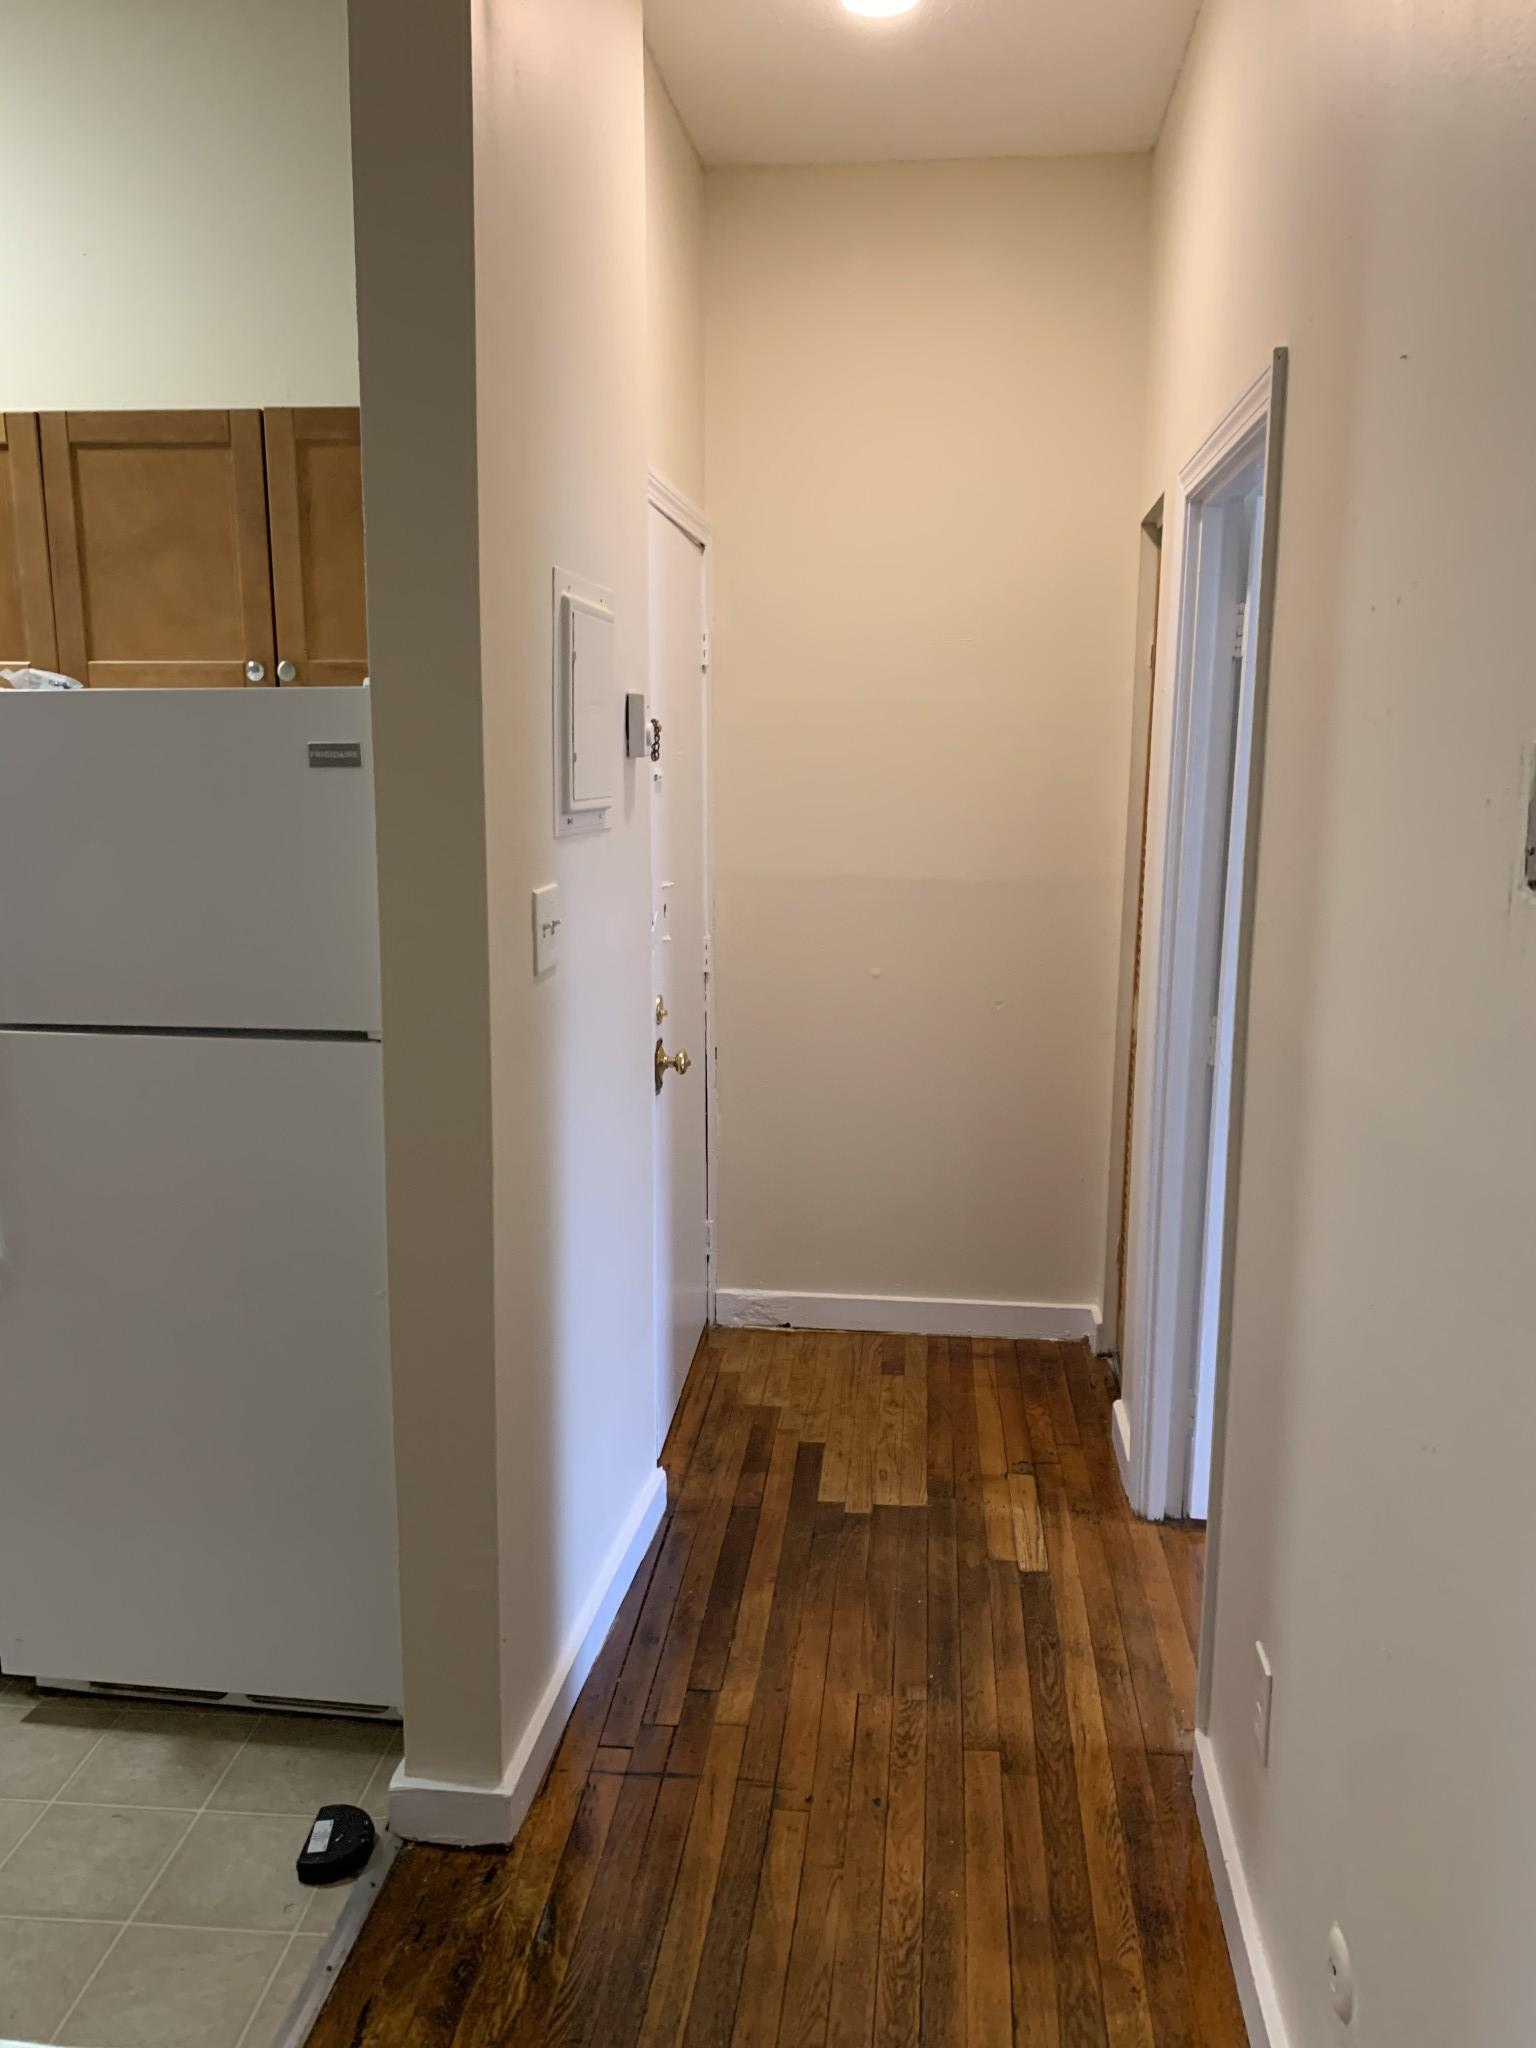 1 Bed, 1 Bath apartment in Boston, Mission Hill for $1,745